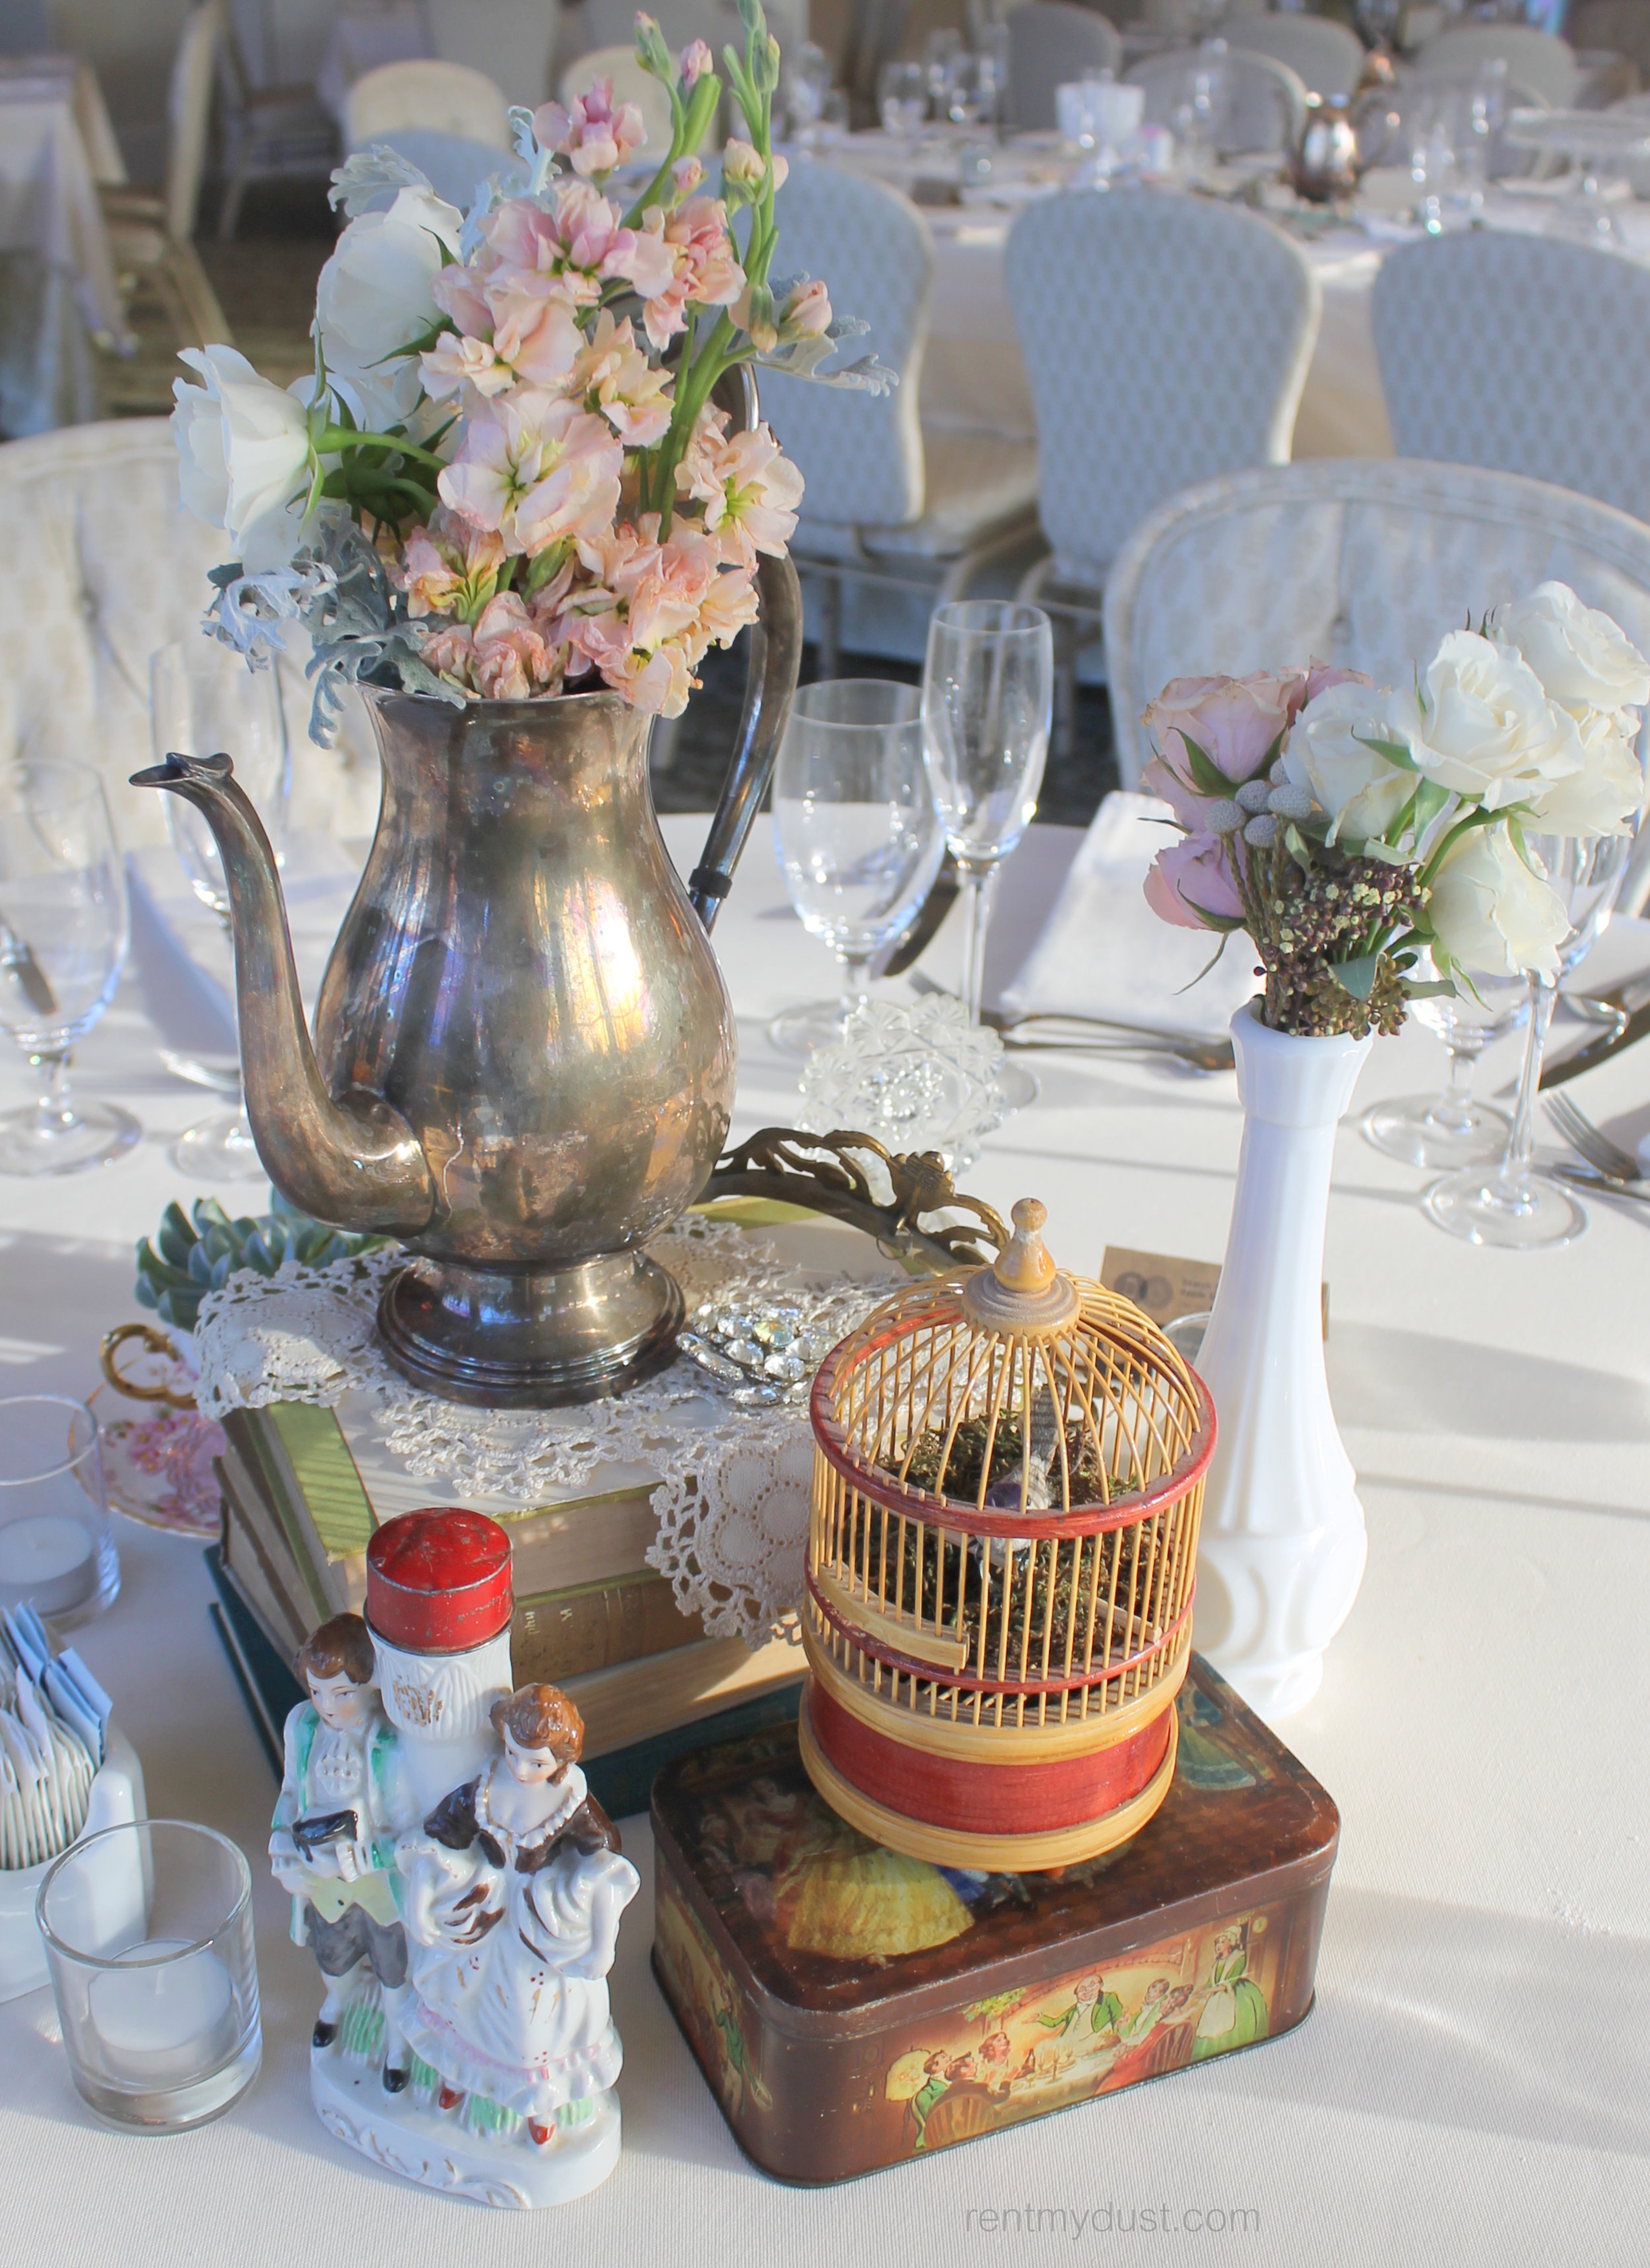 rent my dust_tablescape10.jpg